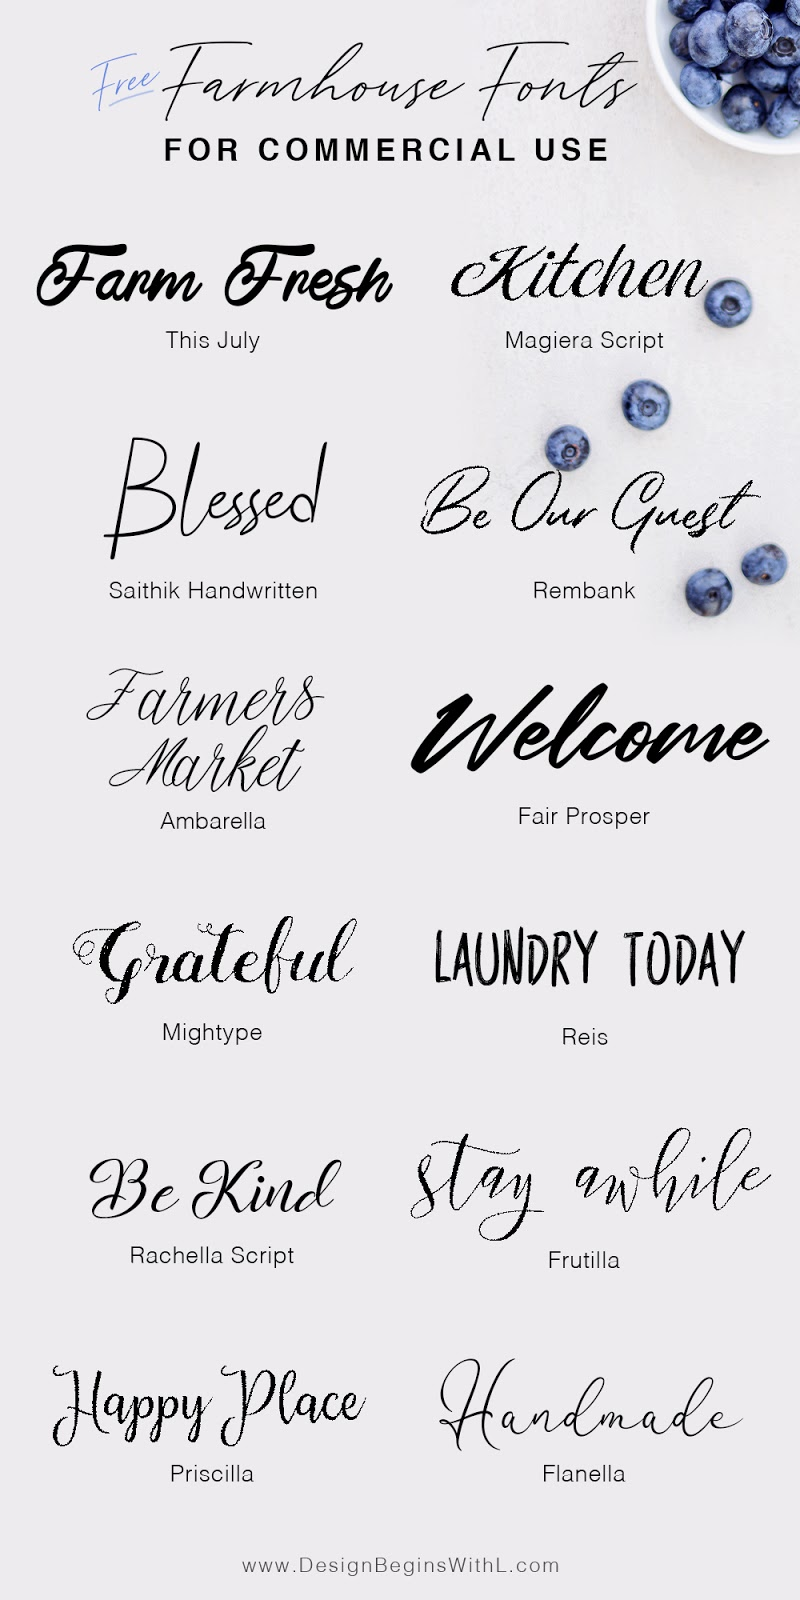 12 Free Farmhouse Fonts For Commercial Use